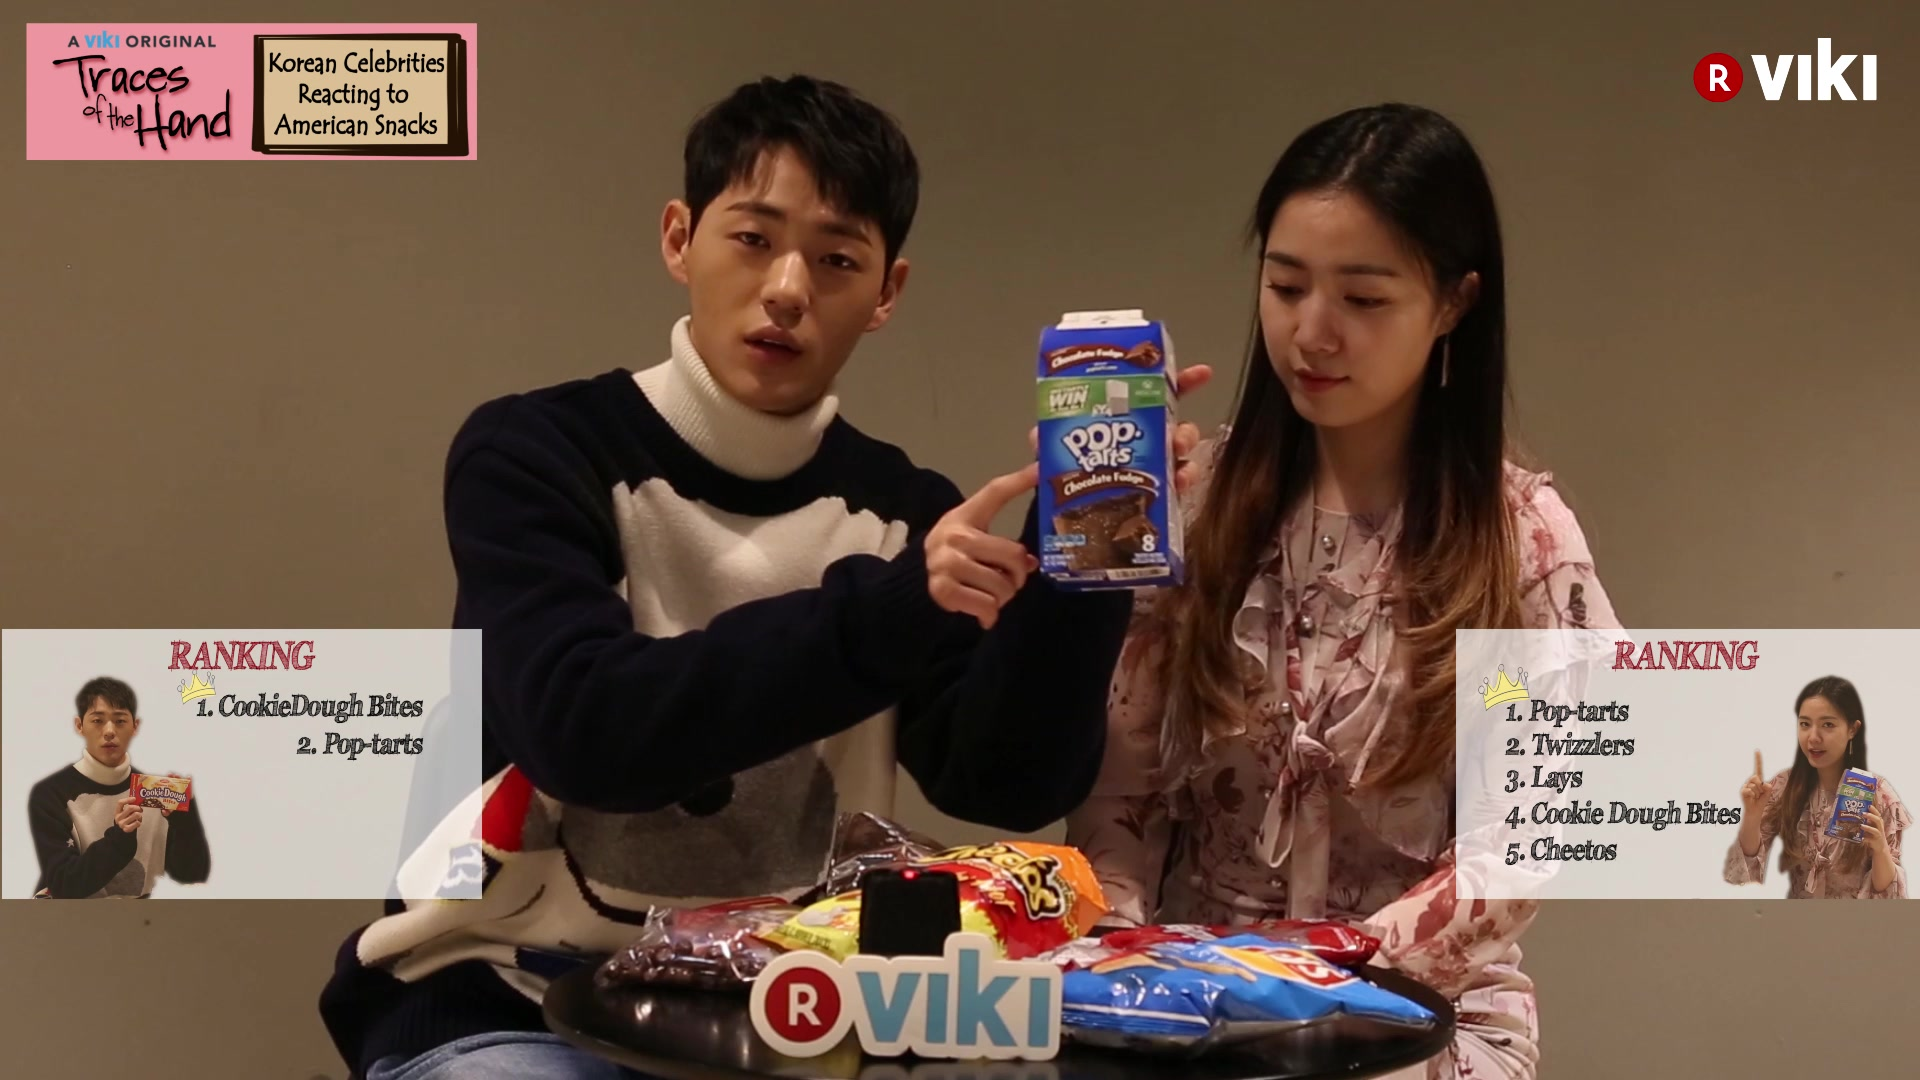 Korean Celebrities React to American Snacks: Traces of the Hand